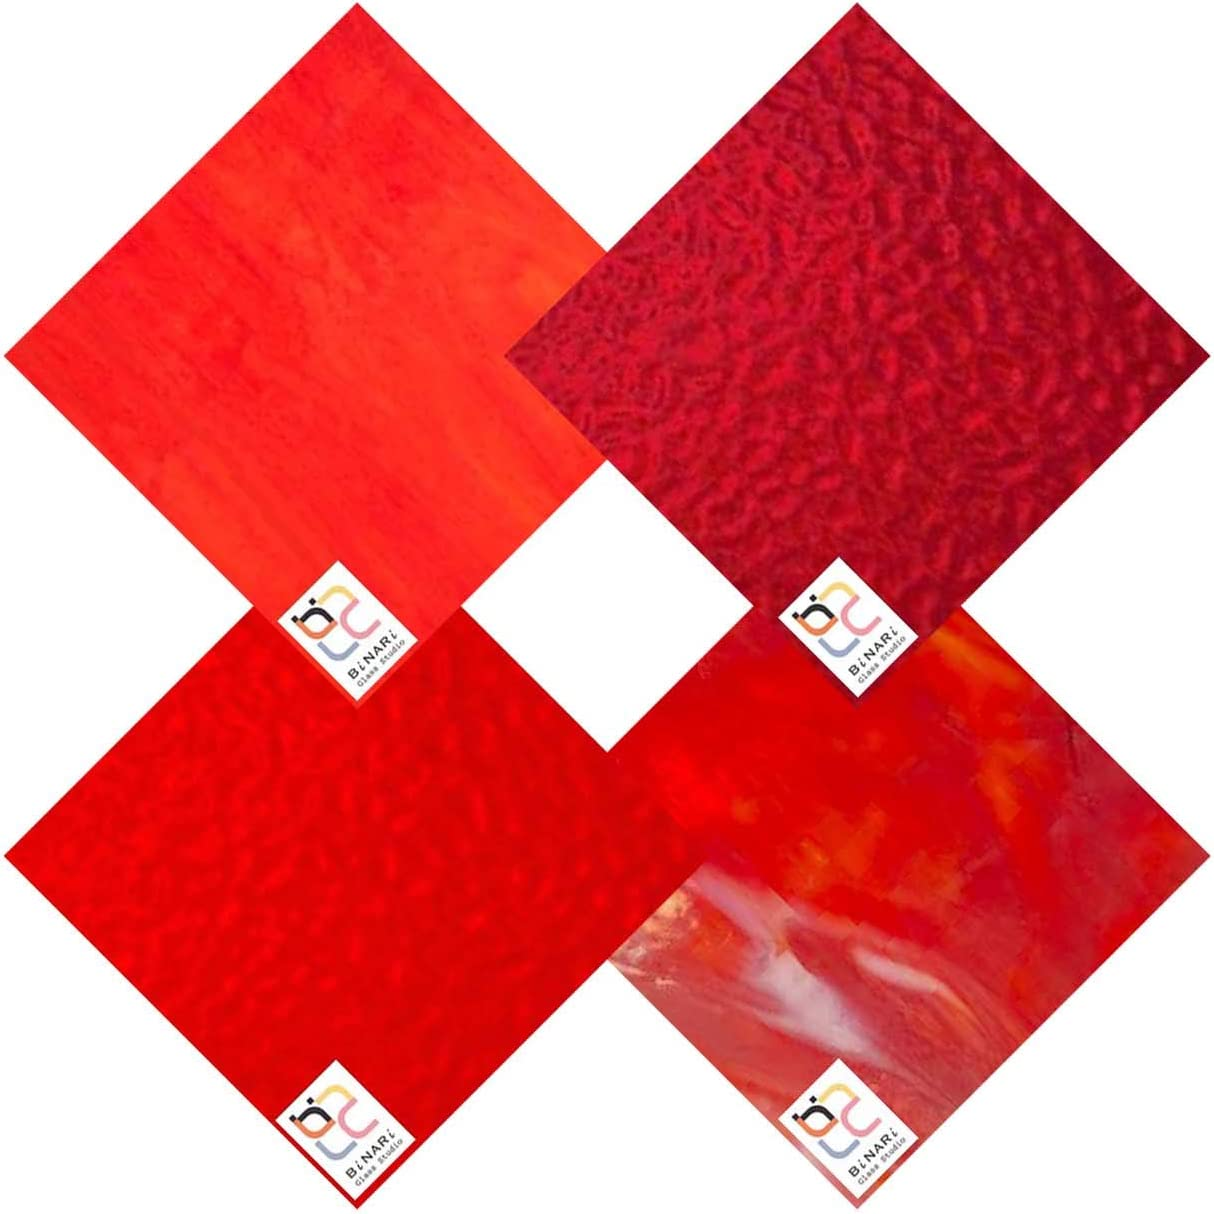 Wissmach 4 Sheet Mixed Color Variety Pack Glass specialty shop All items free shipping 8 Stained RED